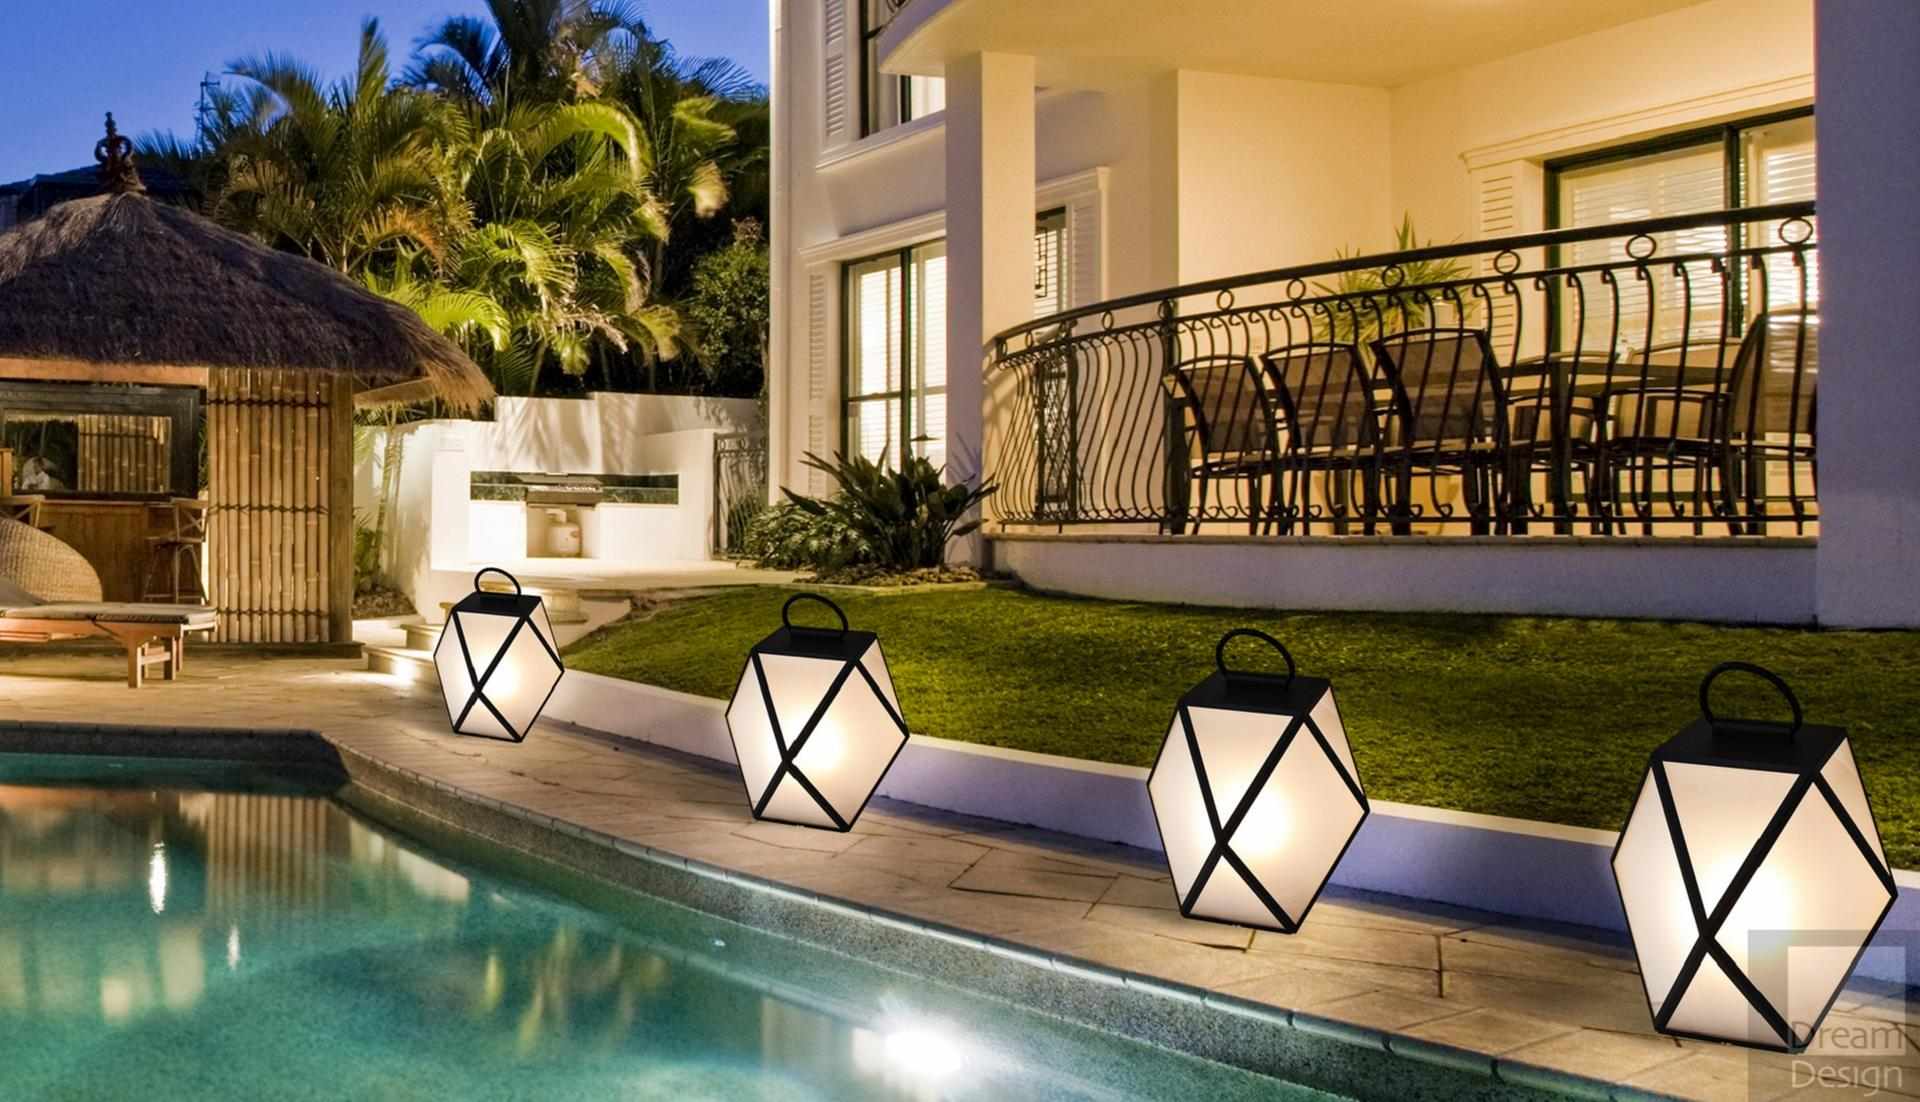 Summer outdoor lighting ideas best restaurants Find the best restaurants in Paris Summer outdoor lighting ideas best restaurants Find the best restaurants in Paris Summer outdoor lighting ideas